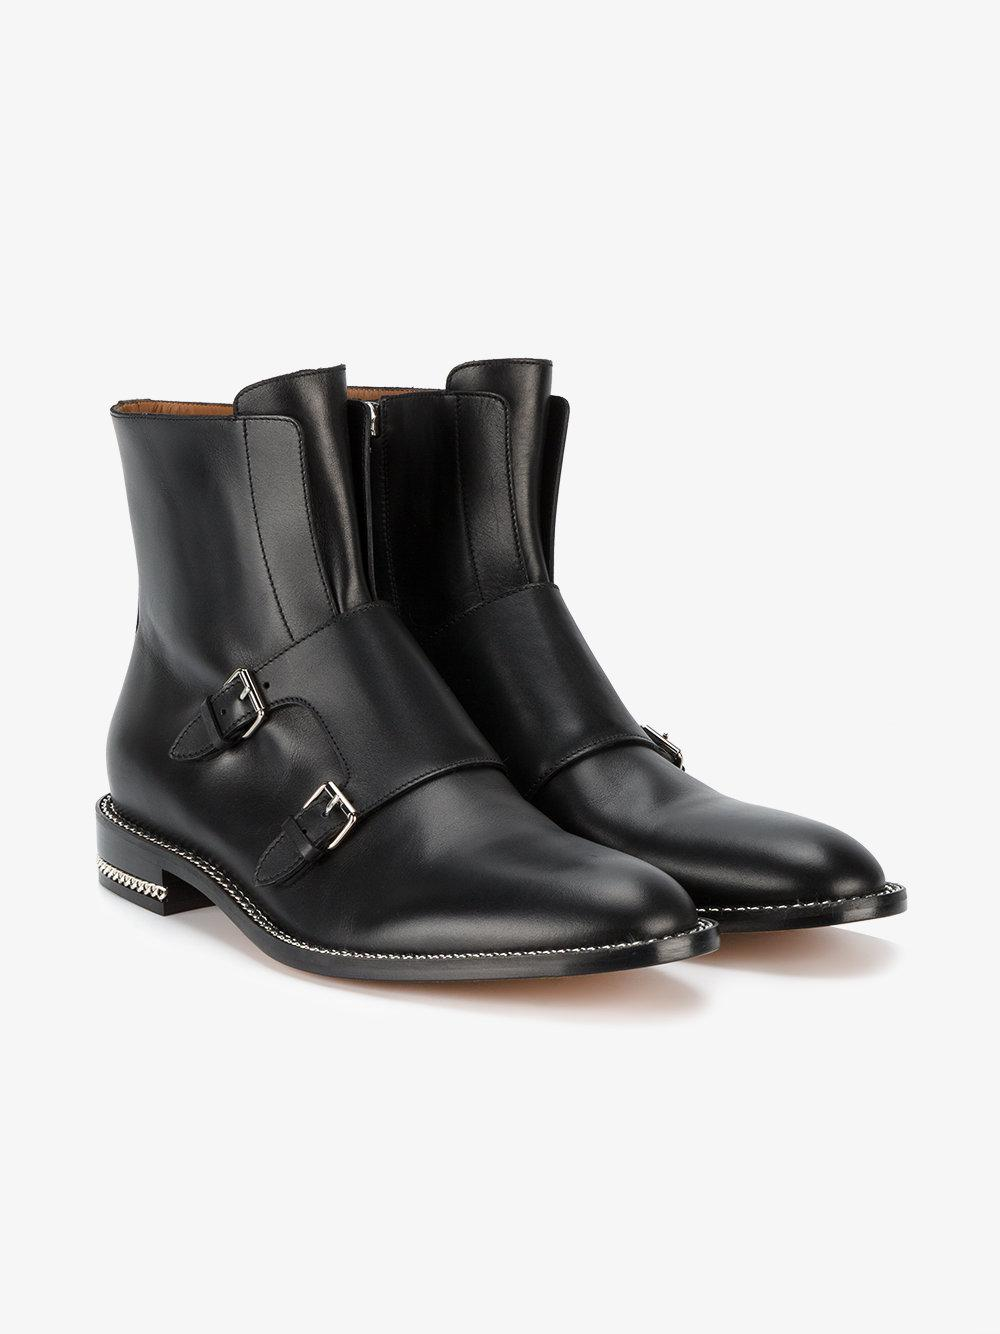 Givenchy Chain Chelsea Boots